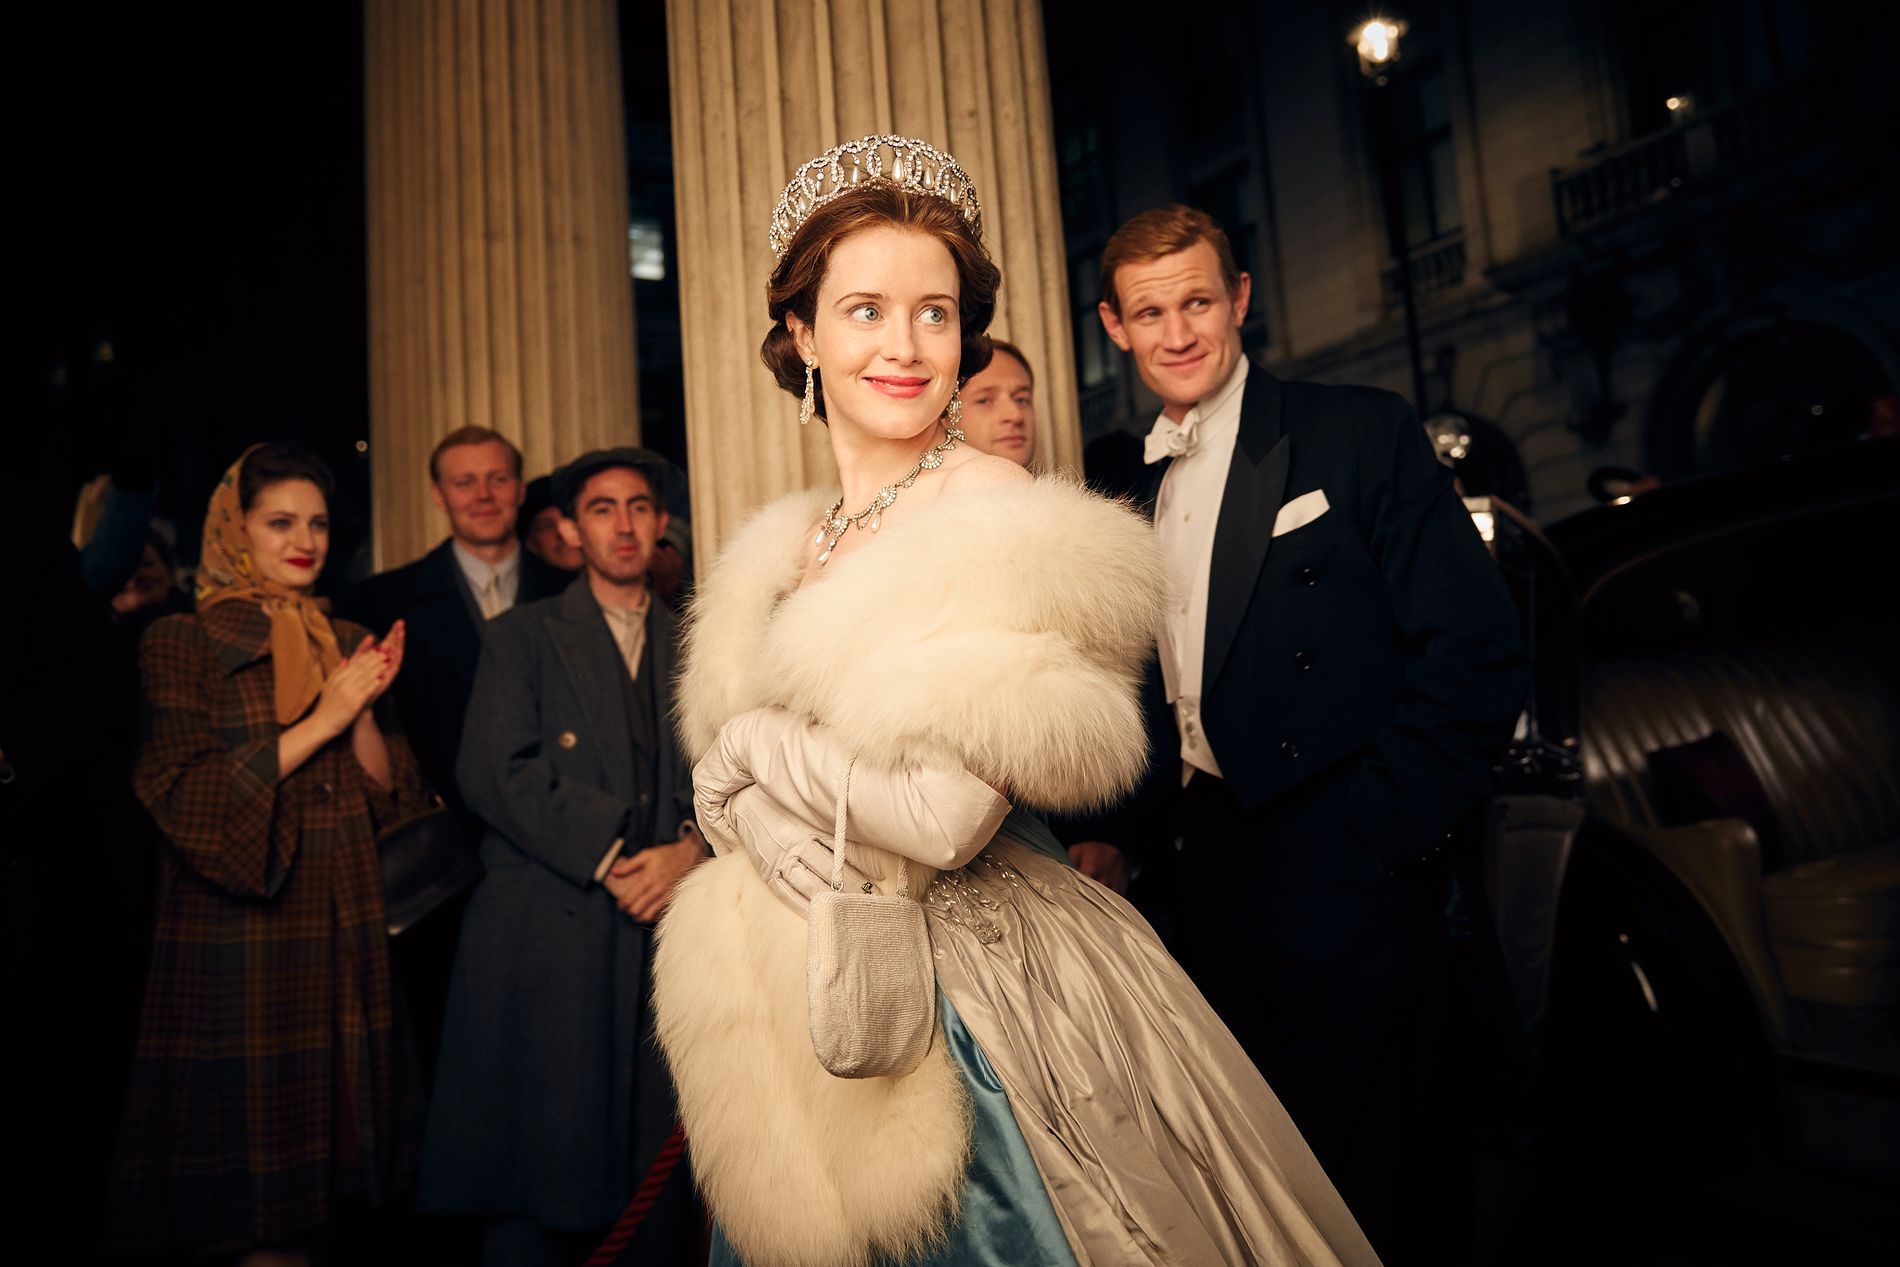 VANT: Claire Foy, her som dronning Elizabeth, vant for «The Crown».